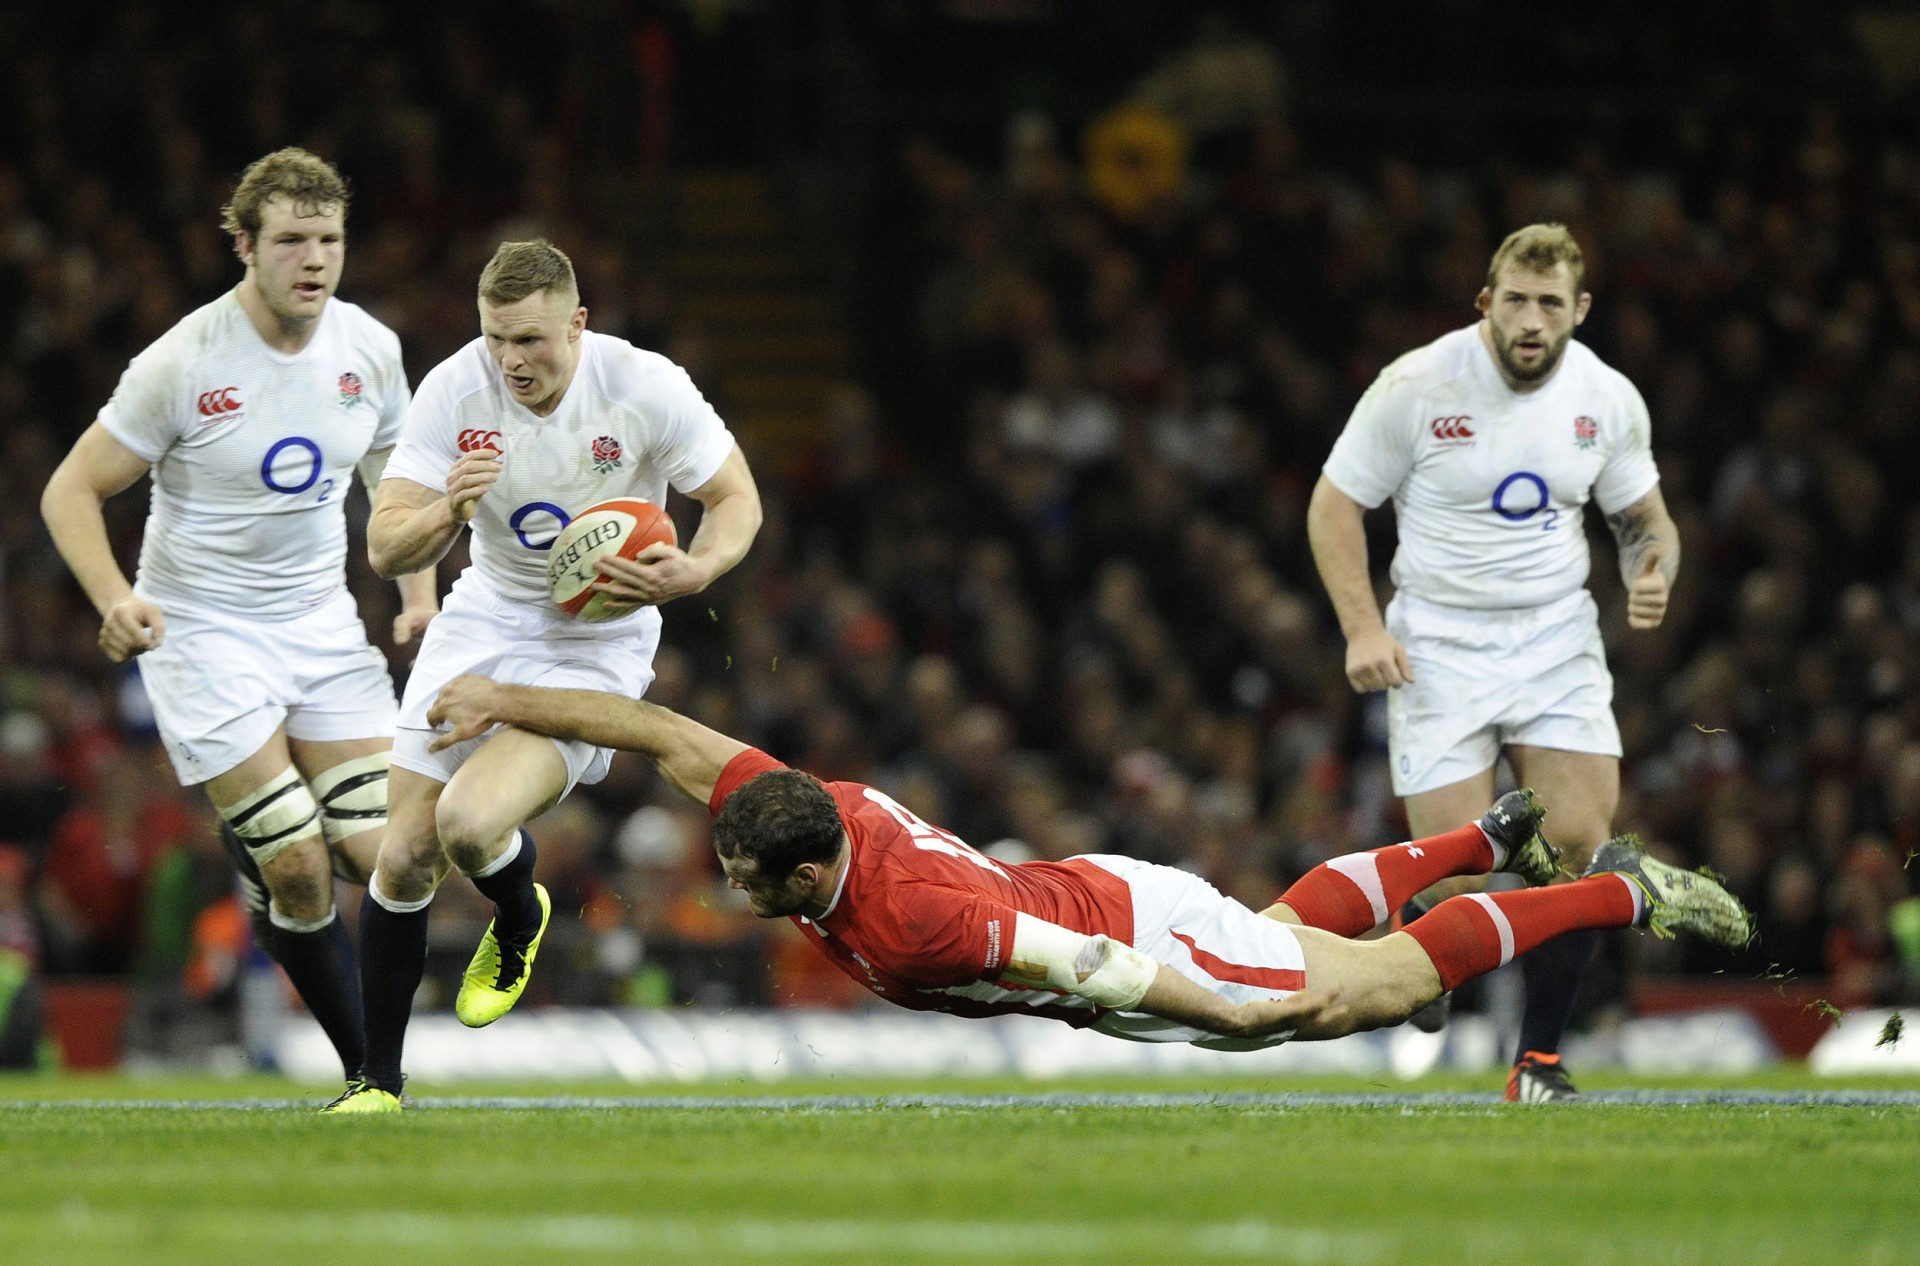 England's Ashton is tackled Wales' Roberts during their Six Nations international rugby union match at the Millennium Stadium in Cardiff